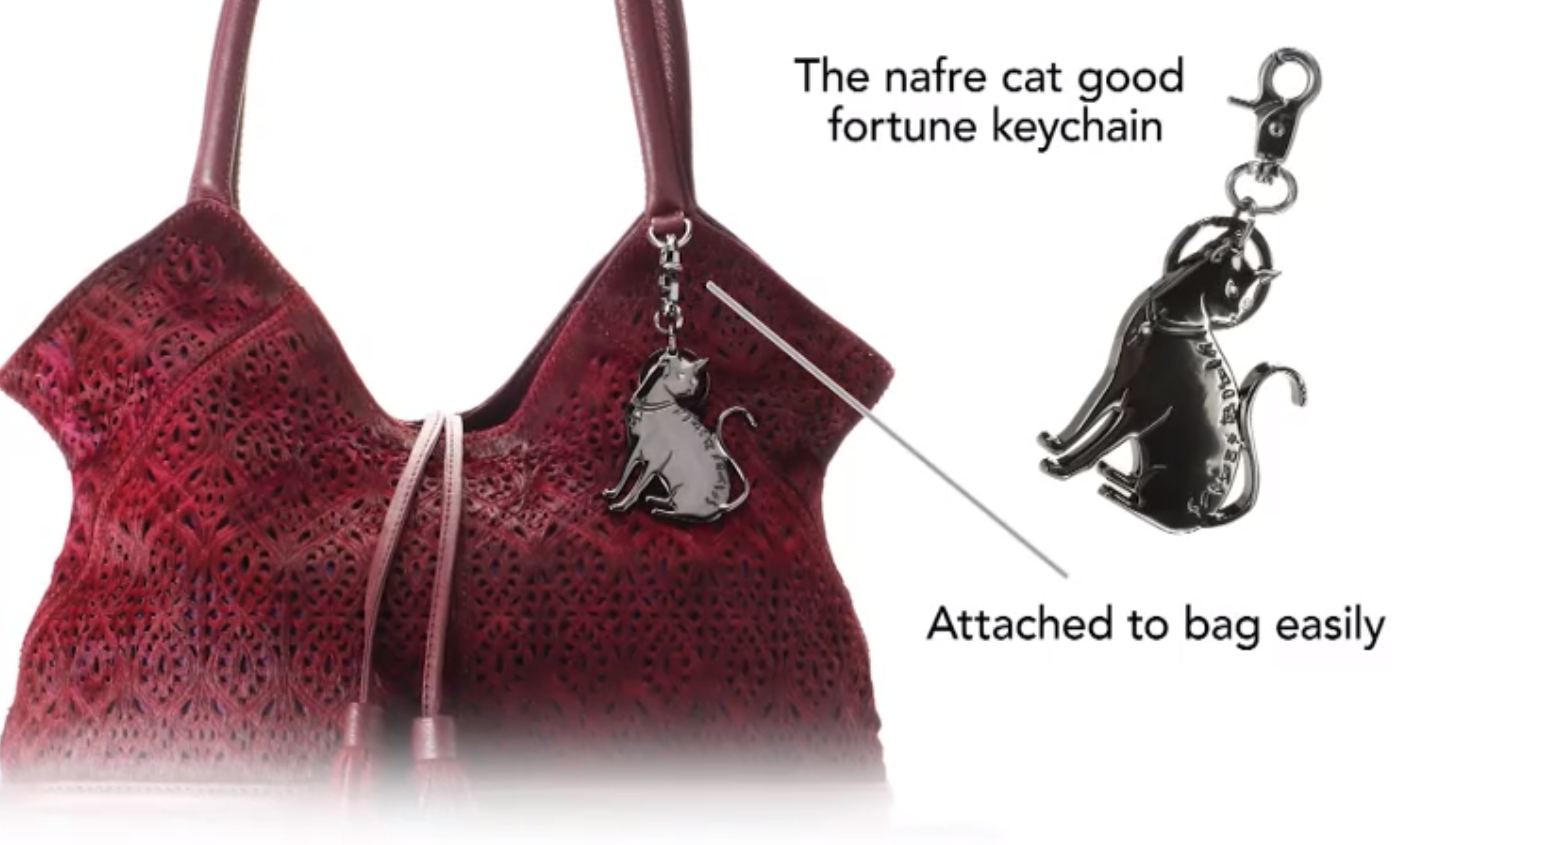 defb6609ff93 ... to participate in Sharif s HANDBAG GIVEAWAY so you can win a beautiful  exclusive handbag and keychain! The keychain is an Egyptian Nafre Good Luck  Cat.